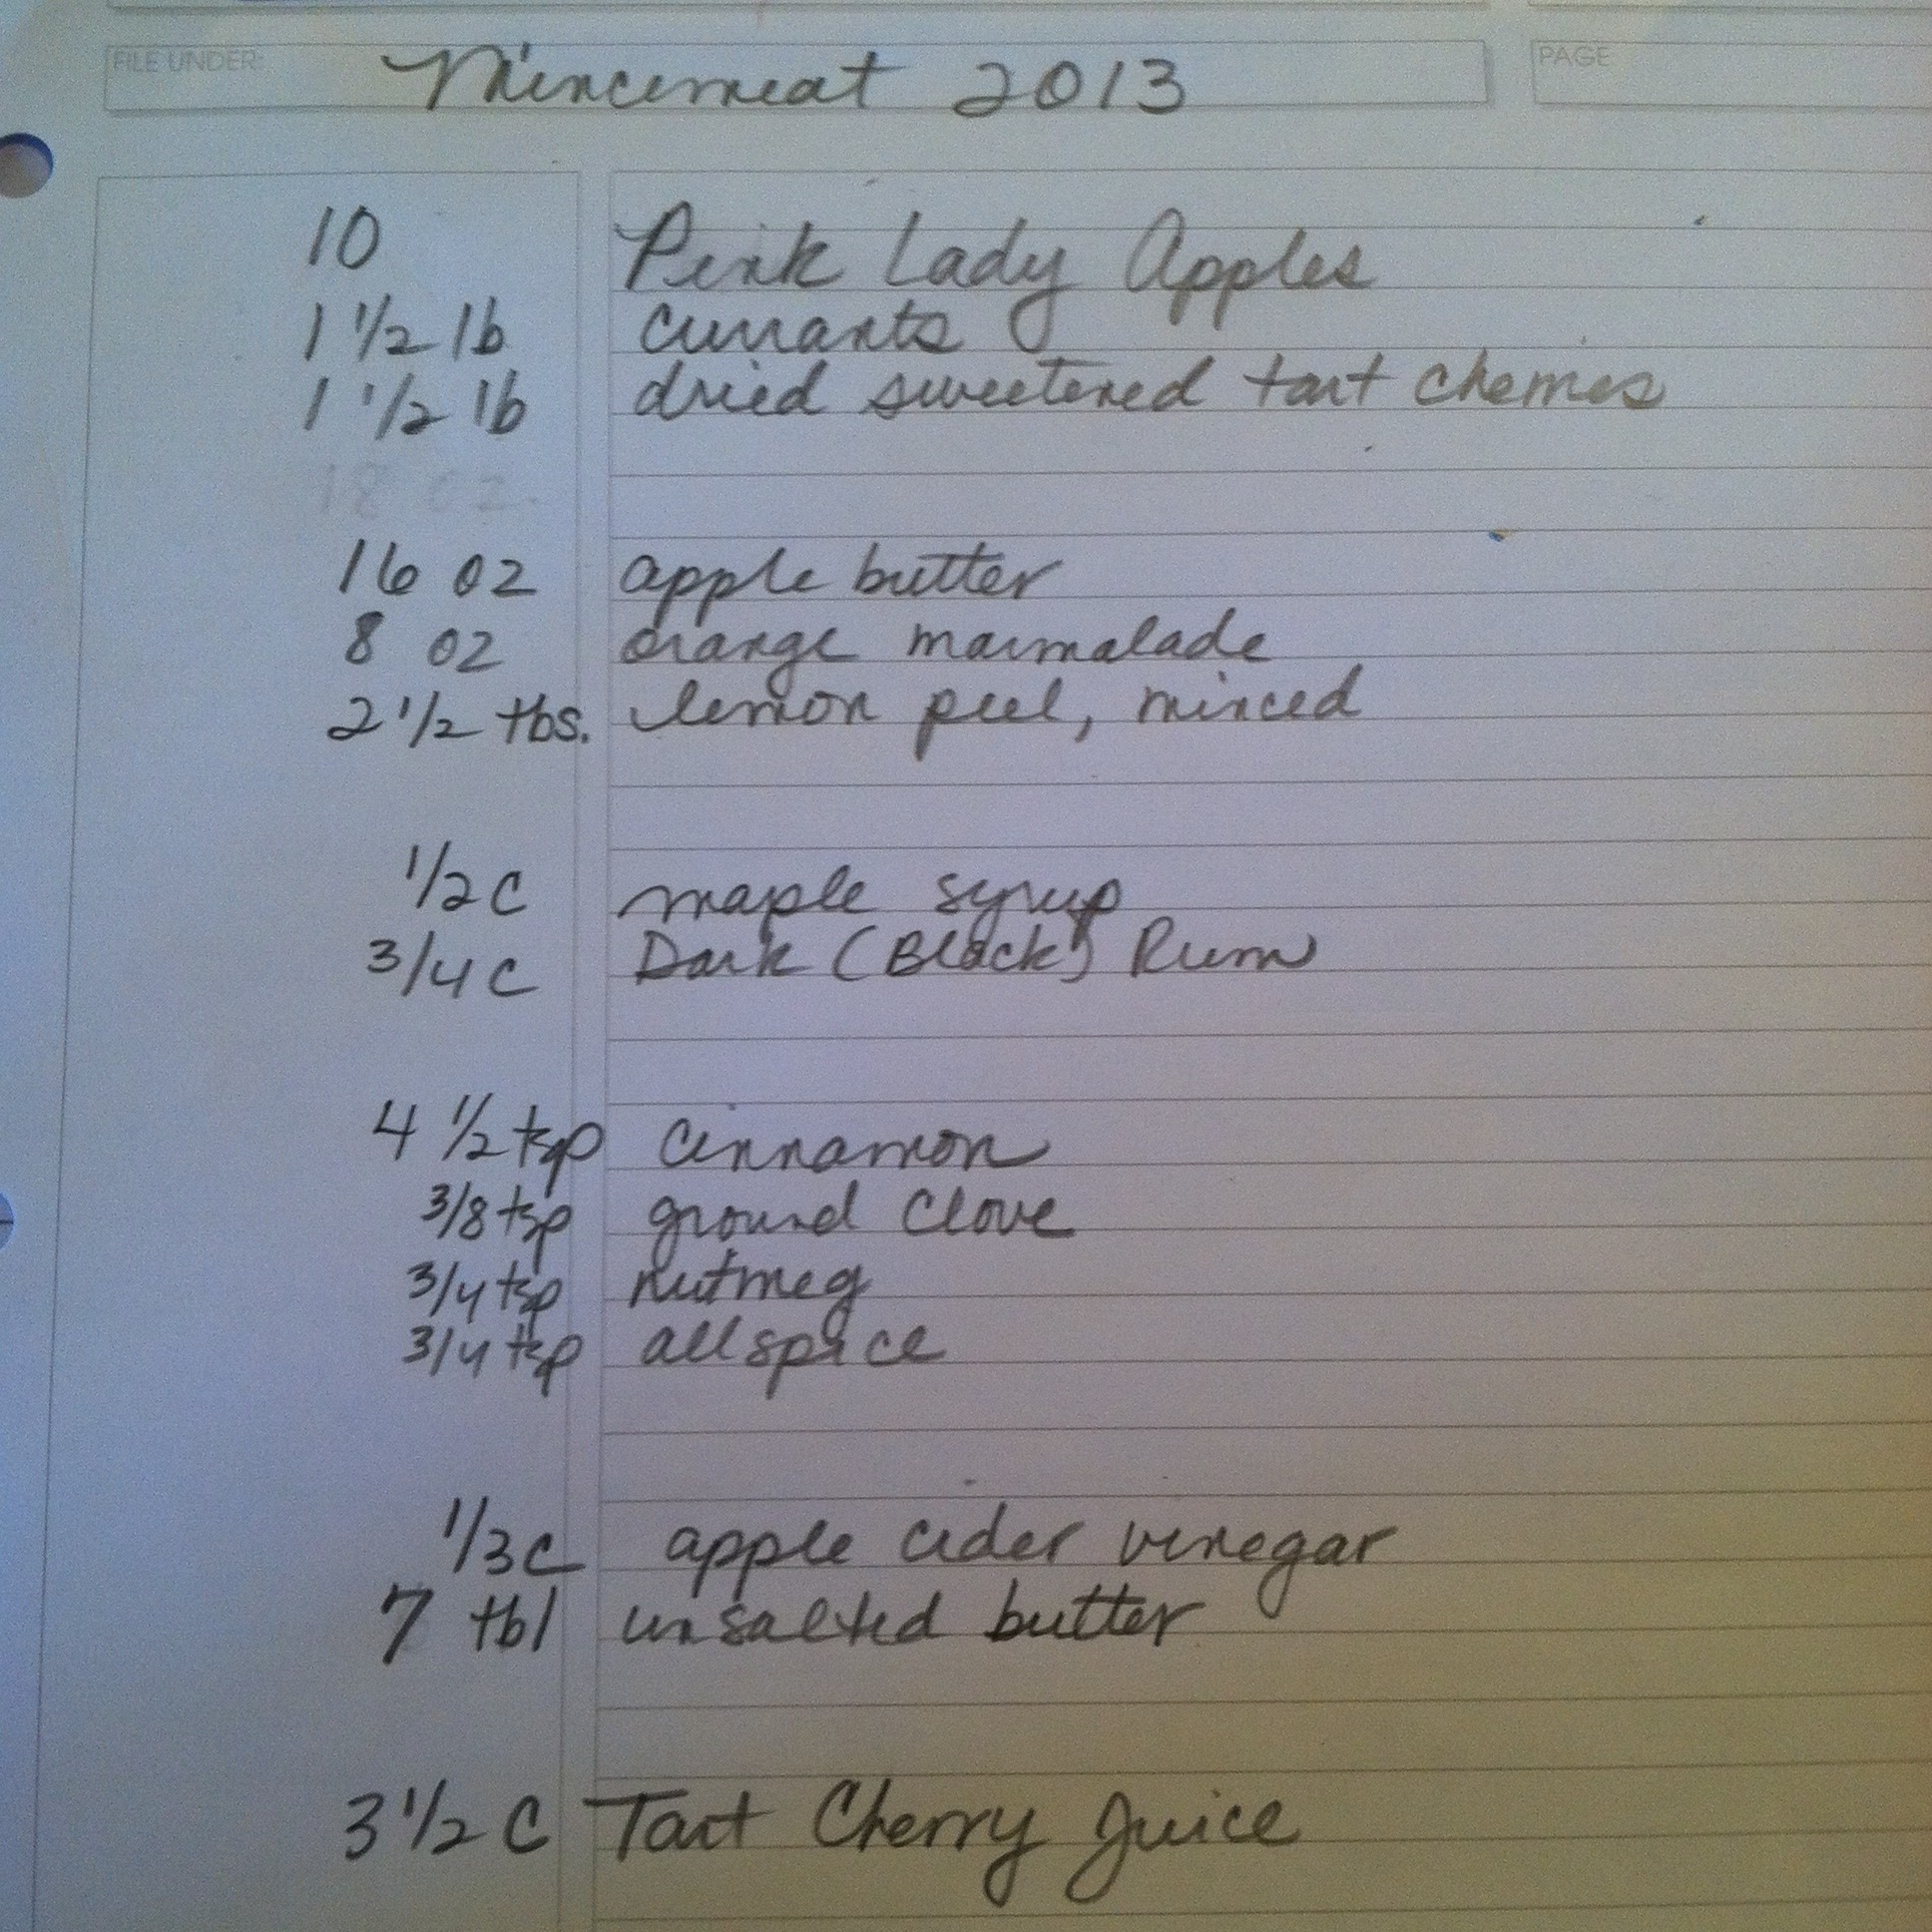 Mincemeat 2013 Recipe